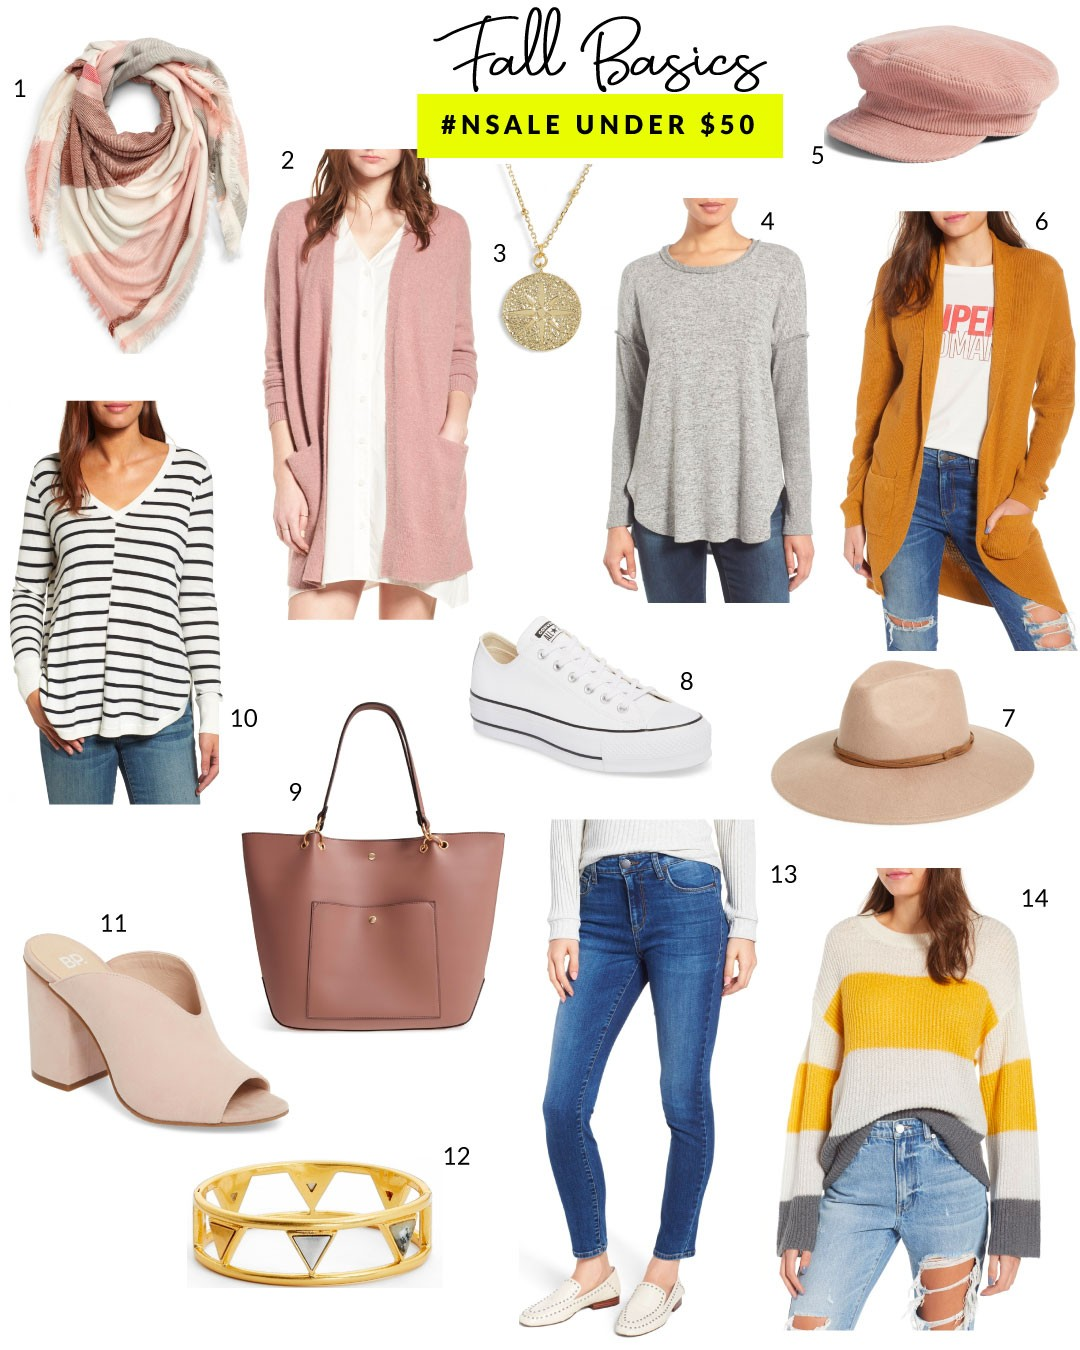 f3721d304ef Cocoon Sweater // 7. hat // 8. platform Converse // 9. Sole Society Tote //  10. High-Low V-neck Sweater // 11. Open Toe Mule // 12. Madewell bracelet